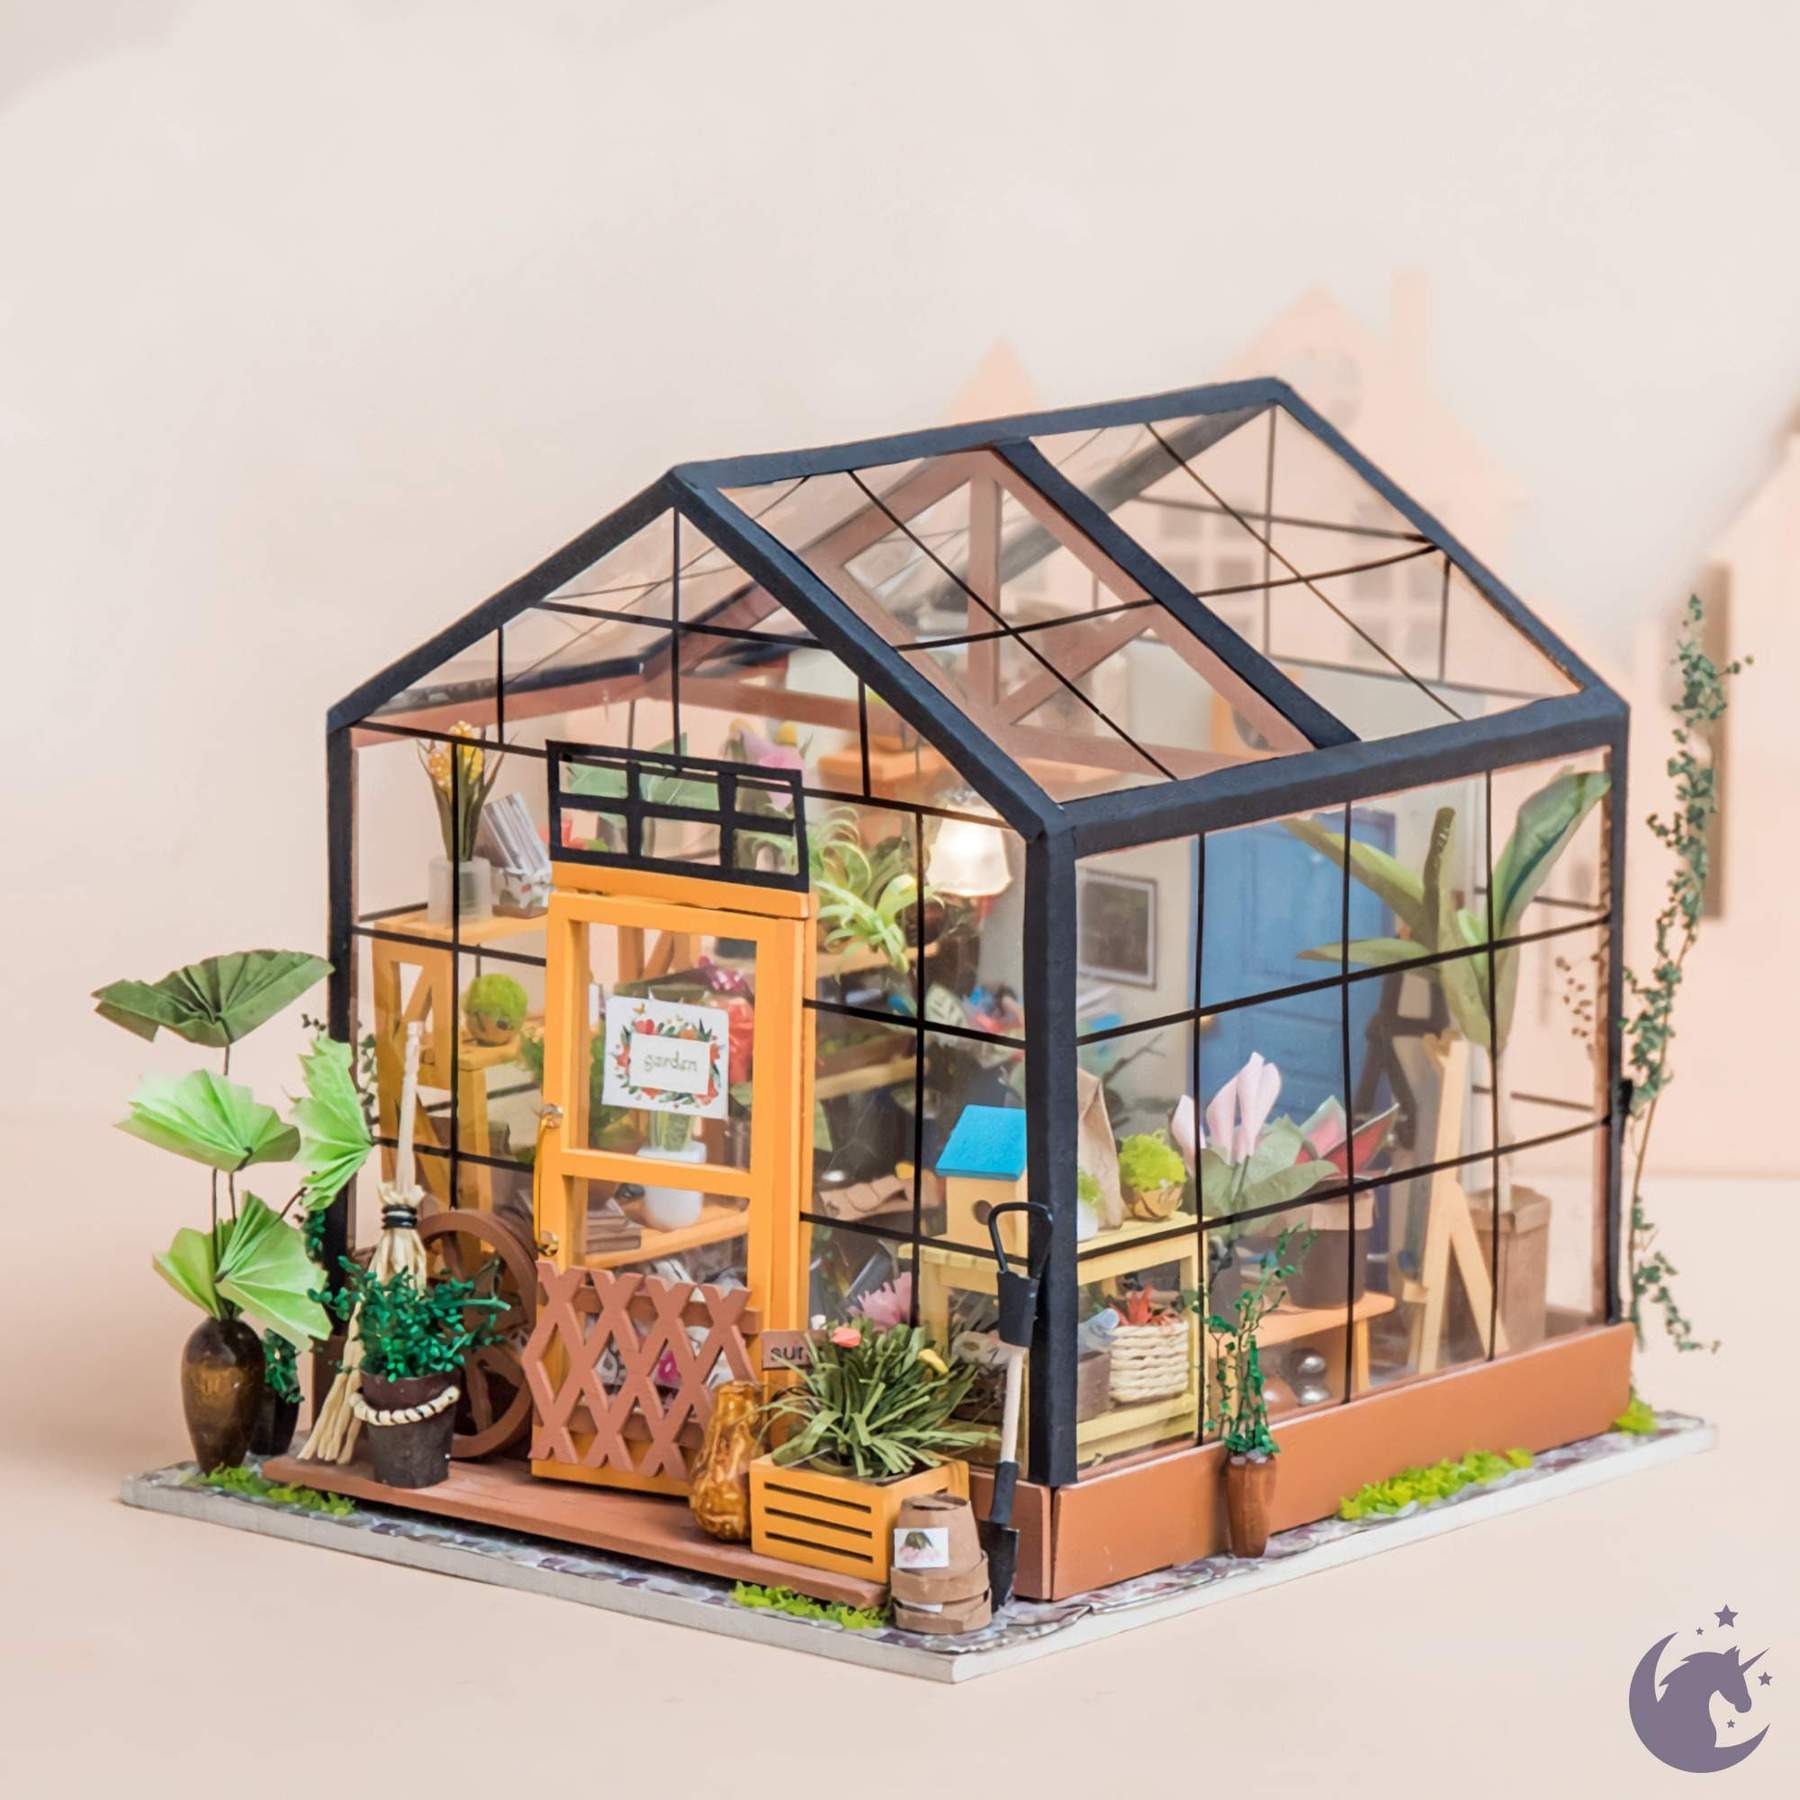 DIY House - Cathy's Greenhouse